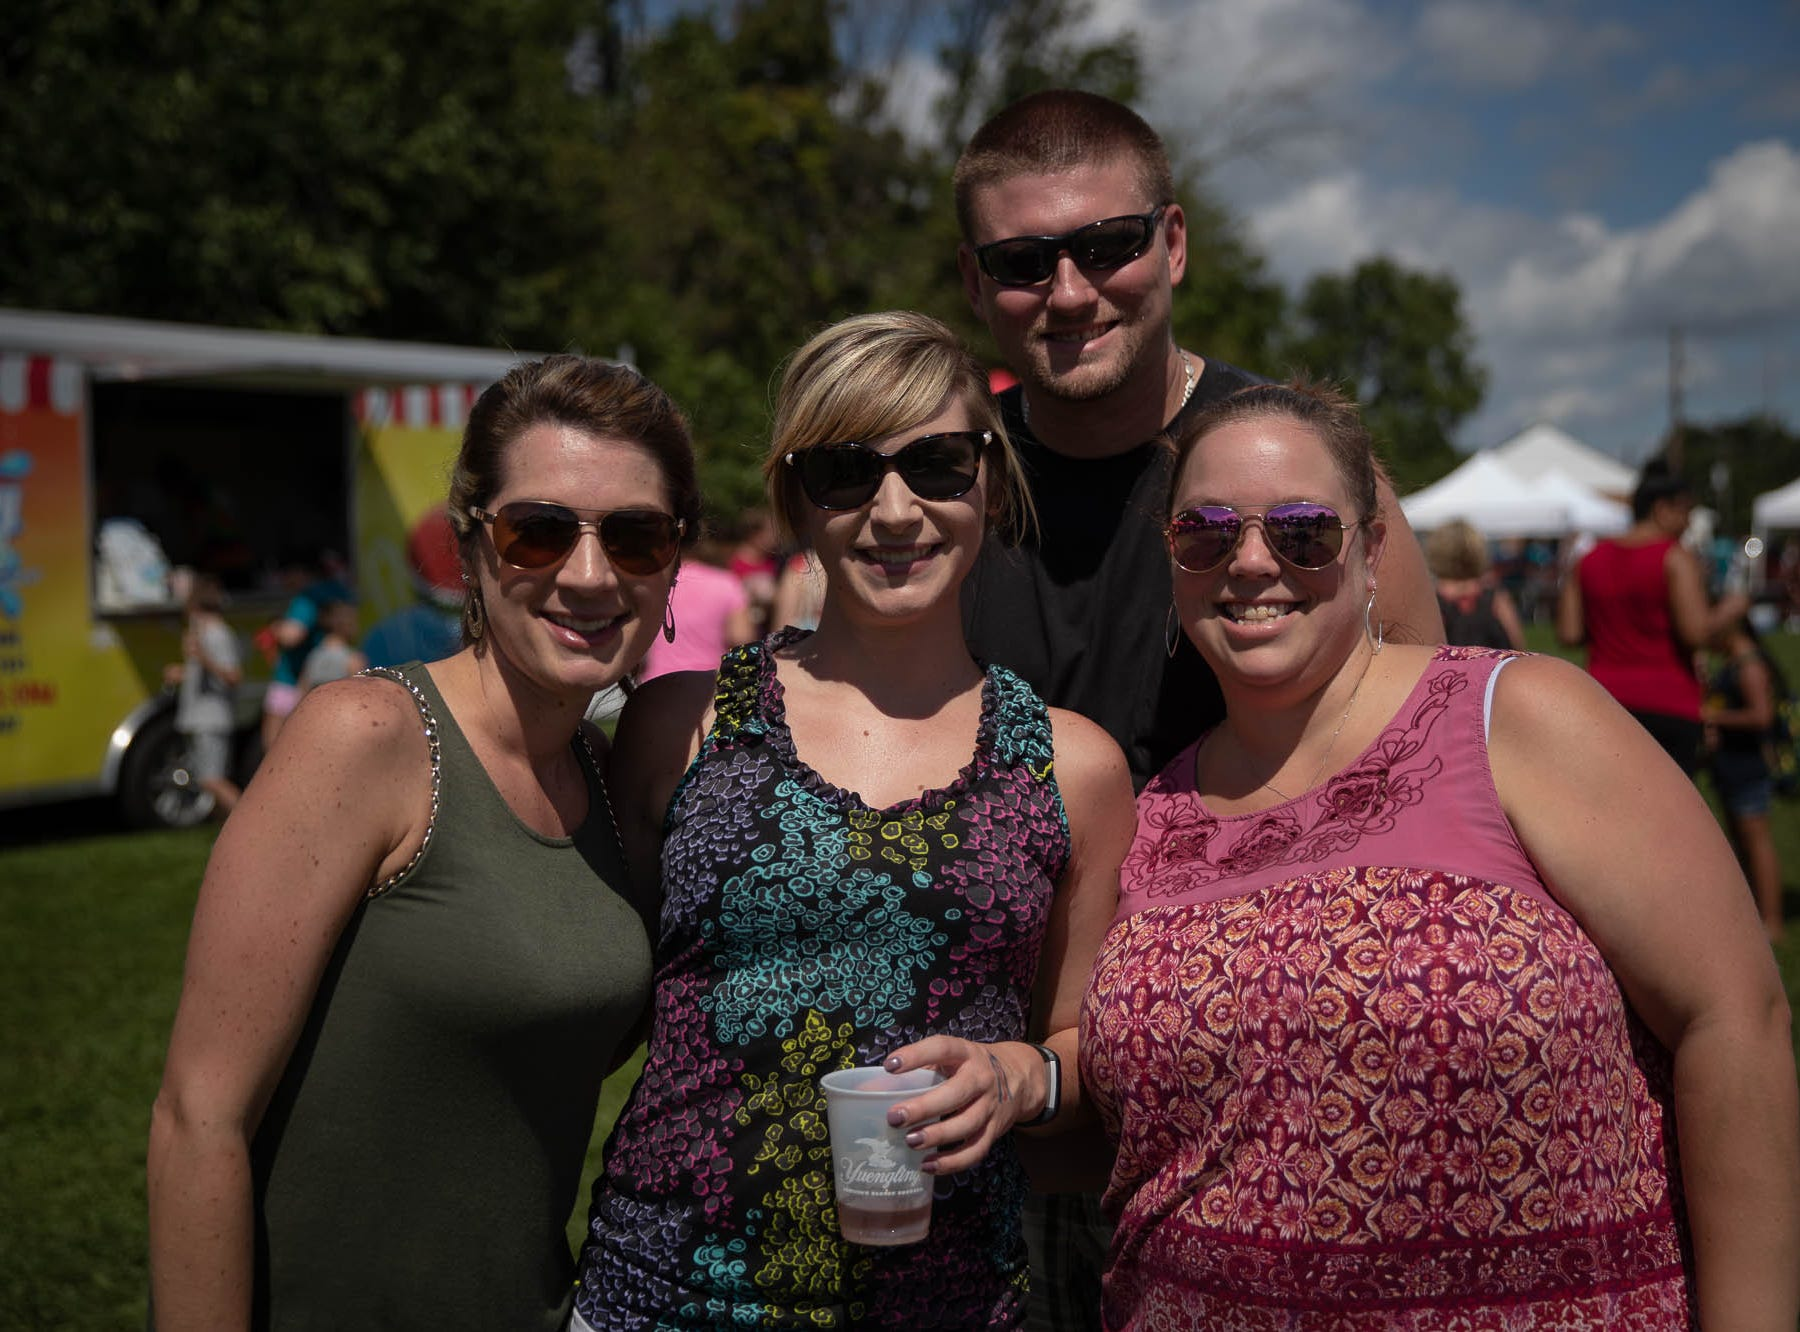 Ashley Szwoyer, Brooke Lippi, Chris Ort, and Jennifer Ort pose for a photo during the 23rd Annual Hanover Chili Cook Off, Sunday, Sept. 2, 2018, at Good Field in Hanover.